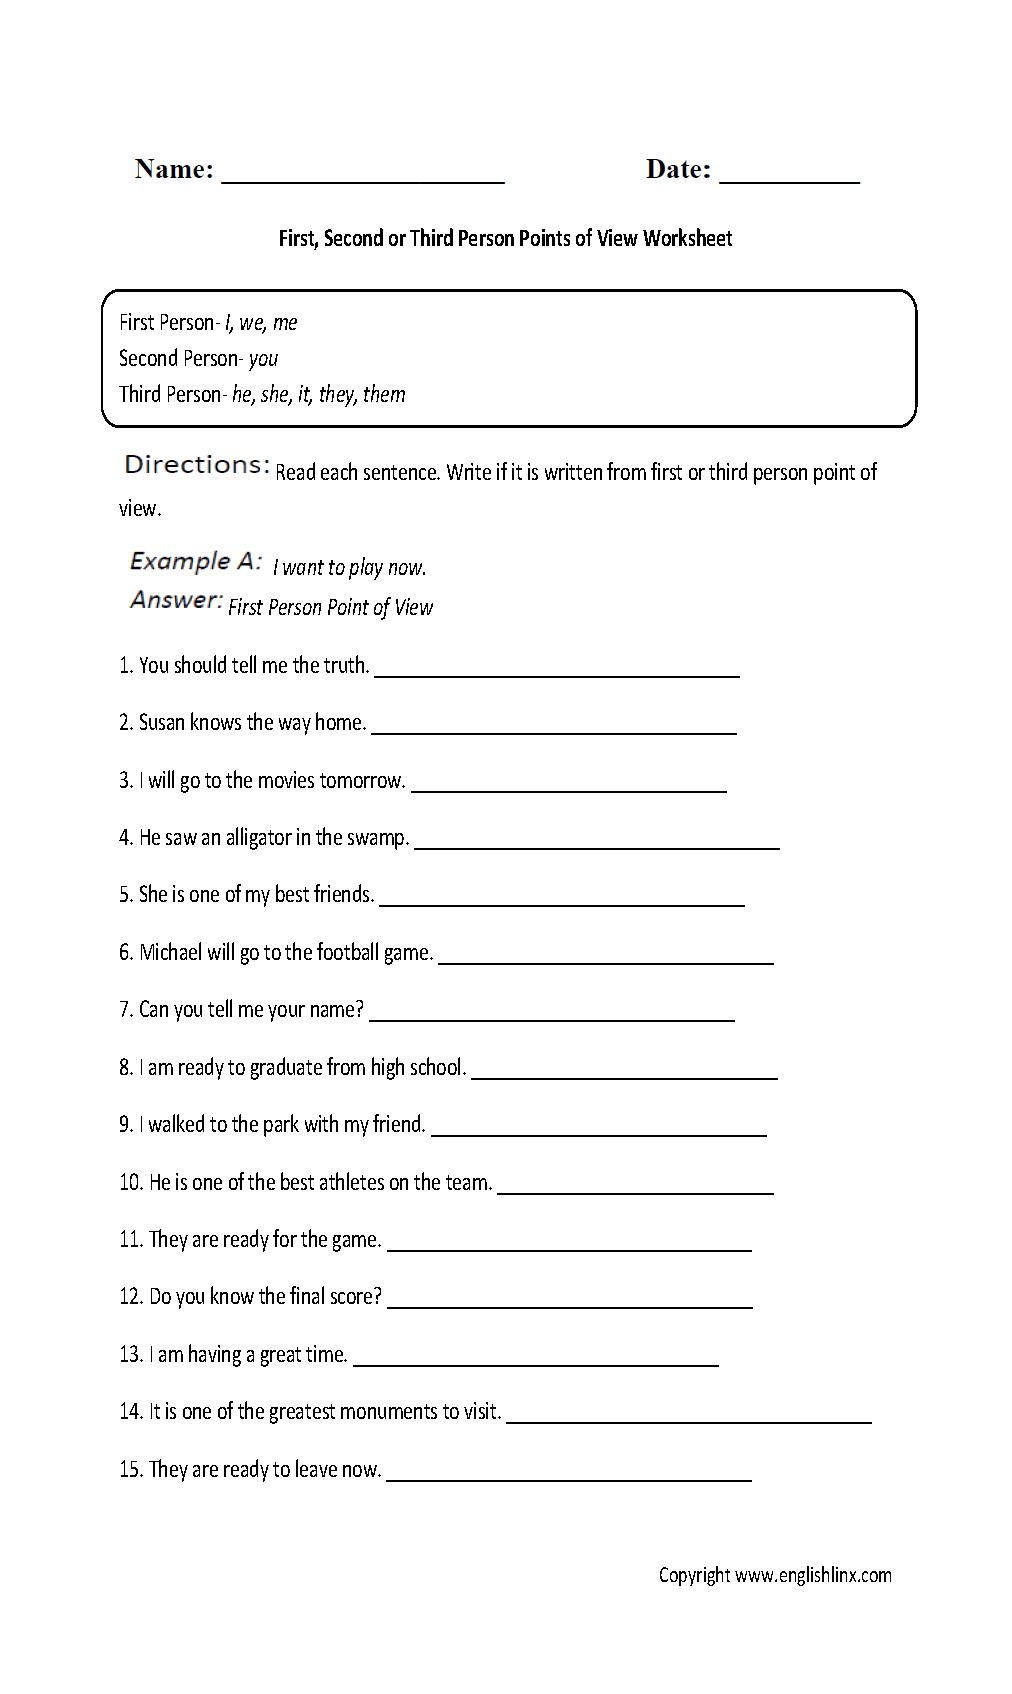 Weirdmailus  Fascinating Englishlinxcom  Point Of View Worksheets With Gorgeous Point Of View Worksheet With Alluring Homophones Worksheets Middle School Also Seven Continents Worksheets In Addition Bar Graphs Worksheets Th Grade And Worksheet On Common And Proper Nouns As Well As  Grade Math Printable Worksheets Additionally Math Practice Worksheets For Th Grade From Englishlinxcom With Weirdmailus  Gorgeous Englishlinxcom  Point Of View Worksheets With Alluring Point Of View Worksheet And Fascinating Homophones Worksheets Middle School Also Seven Continents Worksheets In Addition Bar Graphs Worksheets Th Grade From Englishlinxcom